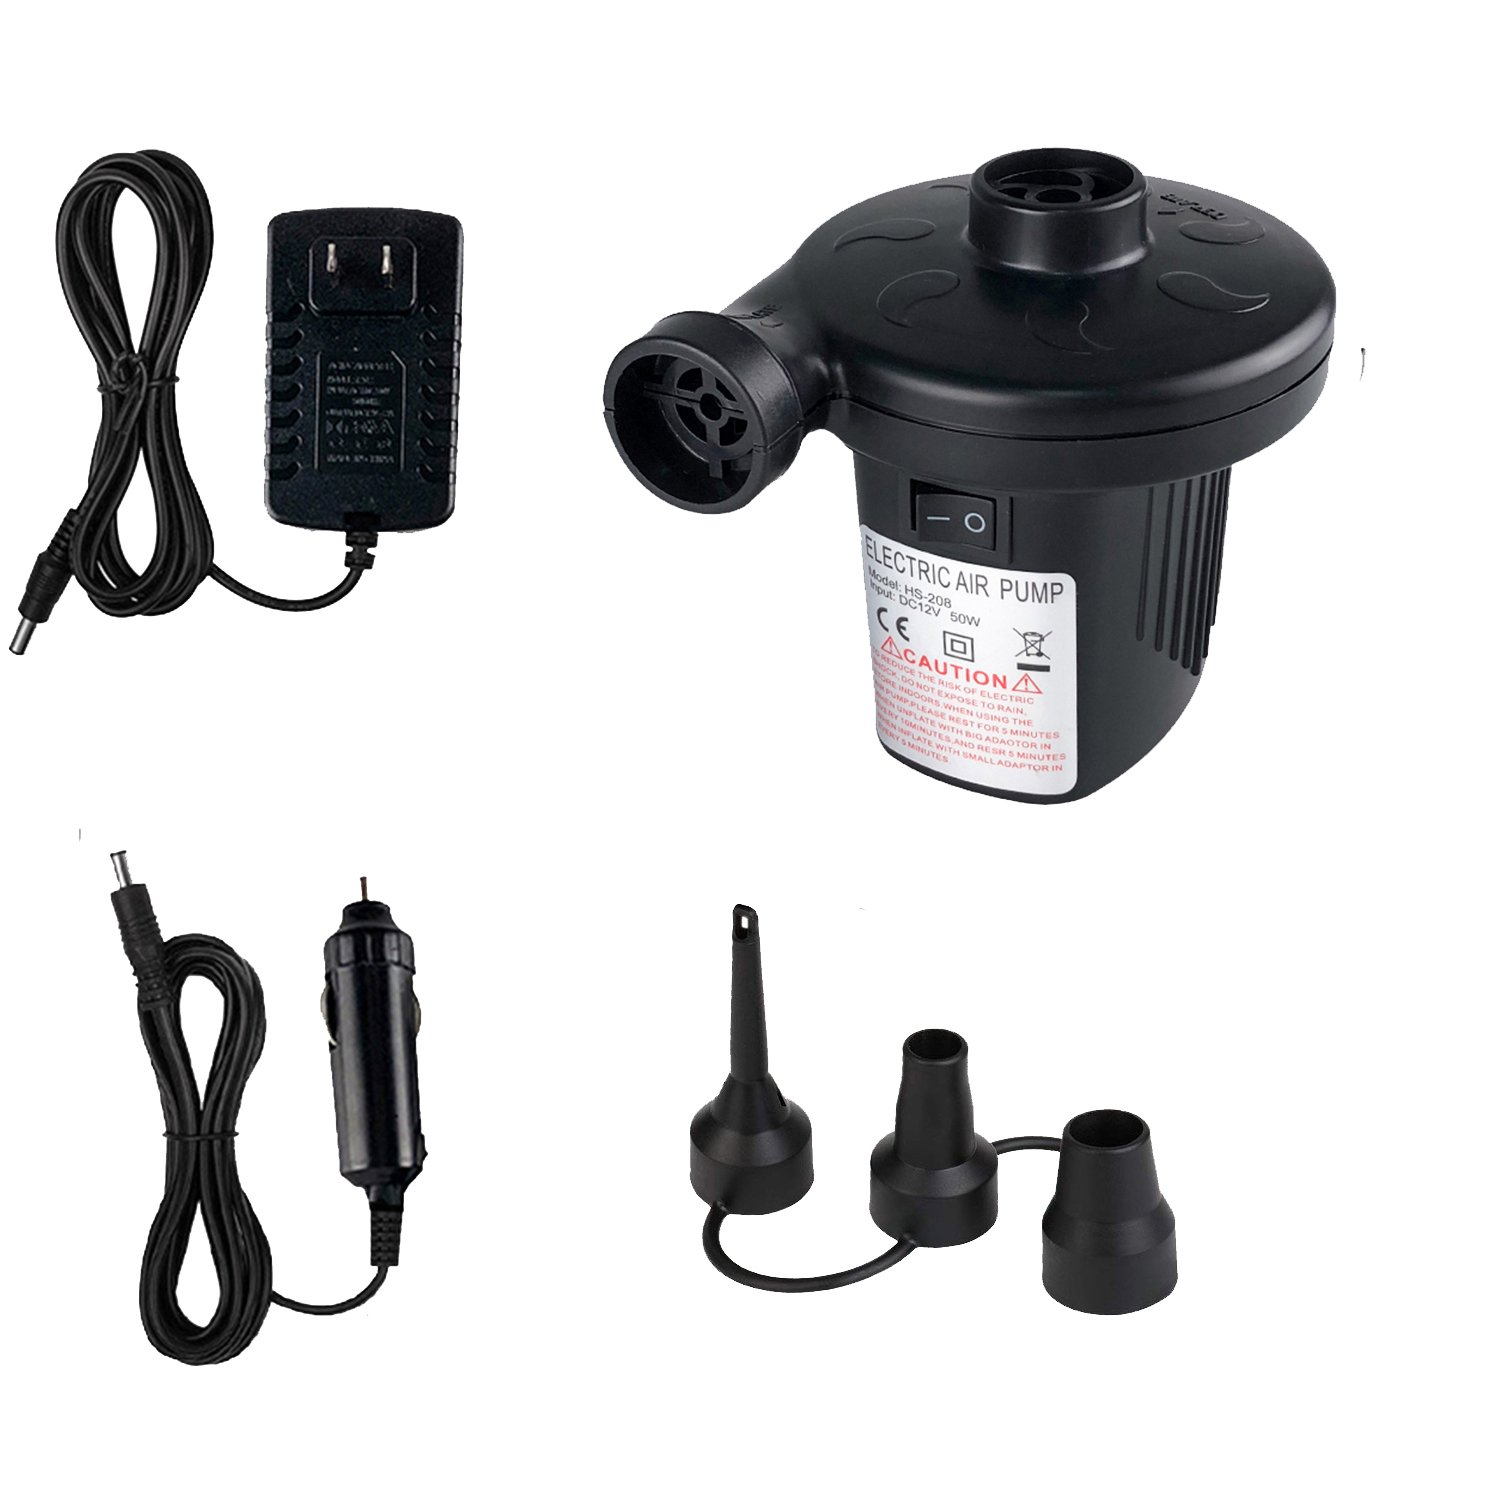 KUMEED Electric Air Pump, Quick-Fill Inflator for Camp Bed Mattress Rafts Pool Floats in 110V AC / 12V DC with Household and Vehicle Adapter, Compact Inflator Deflator with 3 Nozzles – Black